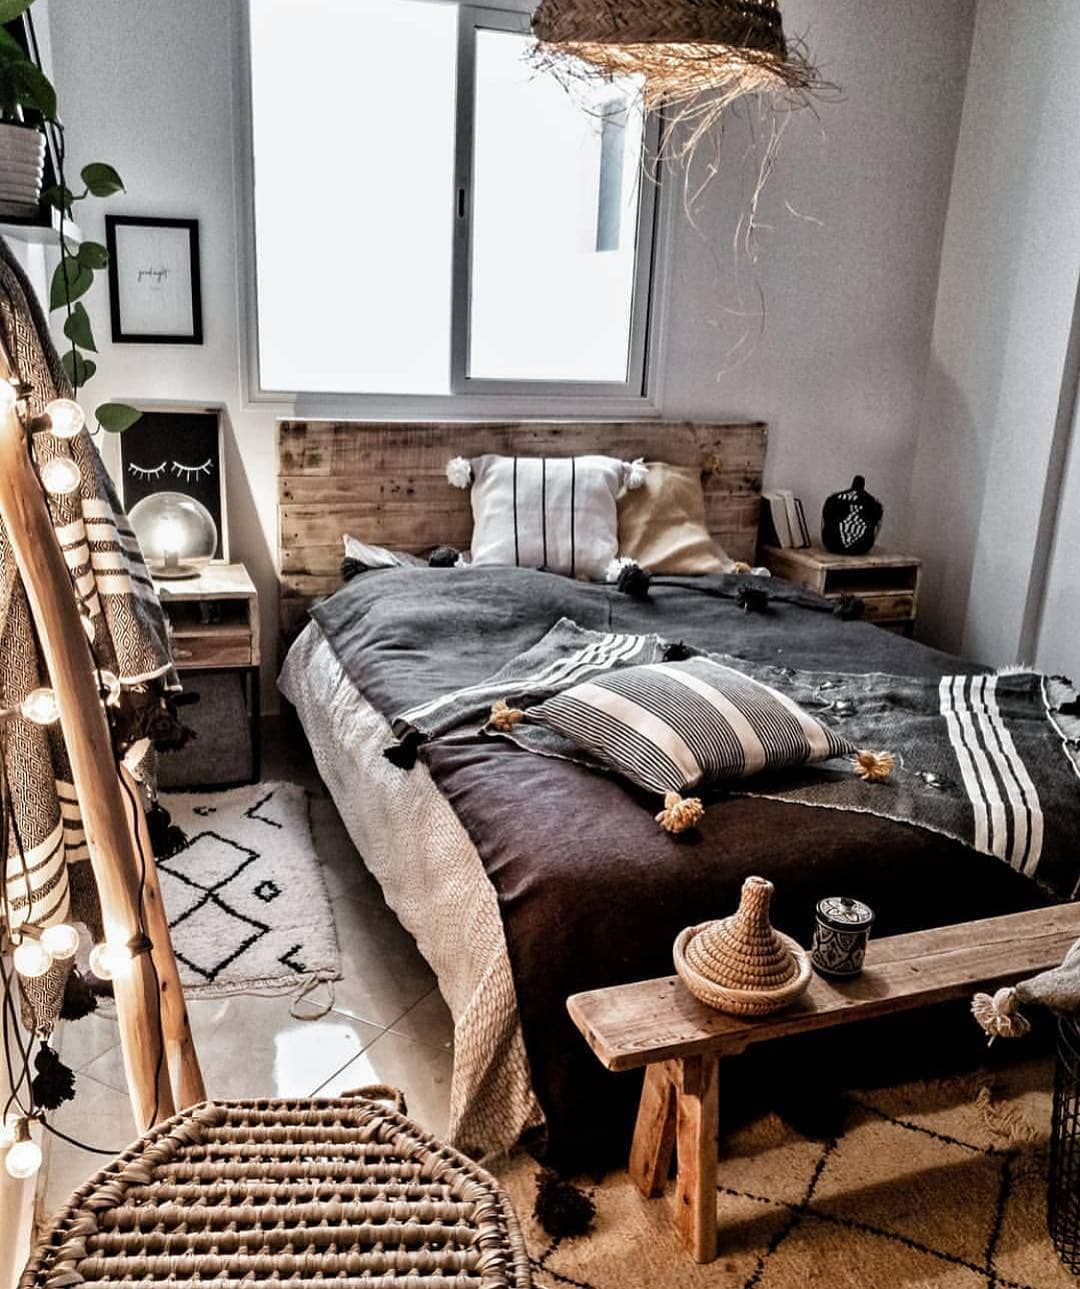 Wedding and Organisation Photo and Video   Comfy bedroom, Cozy ...